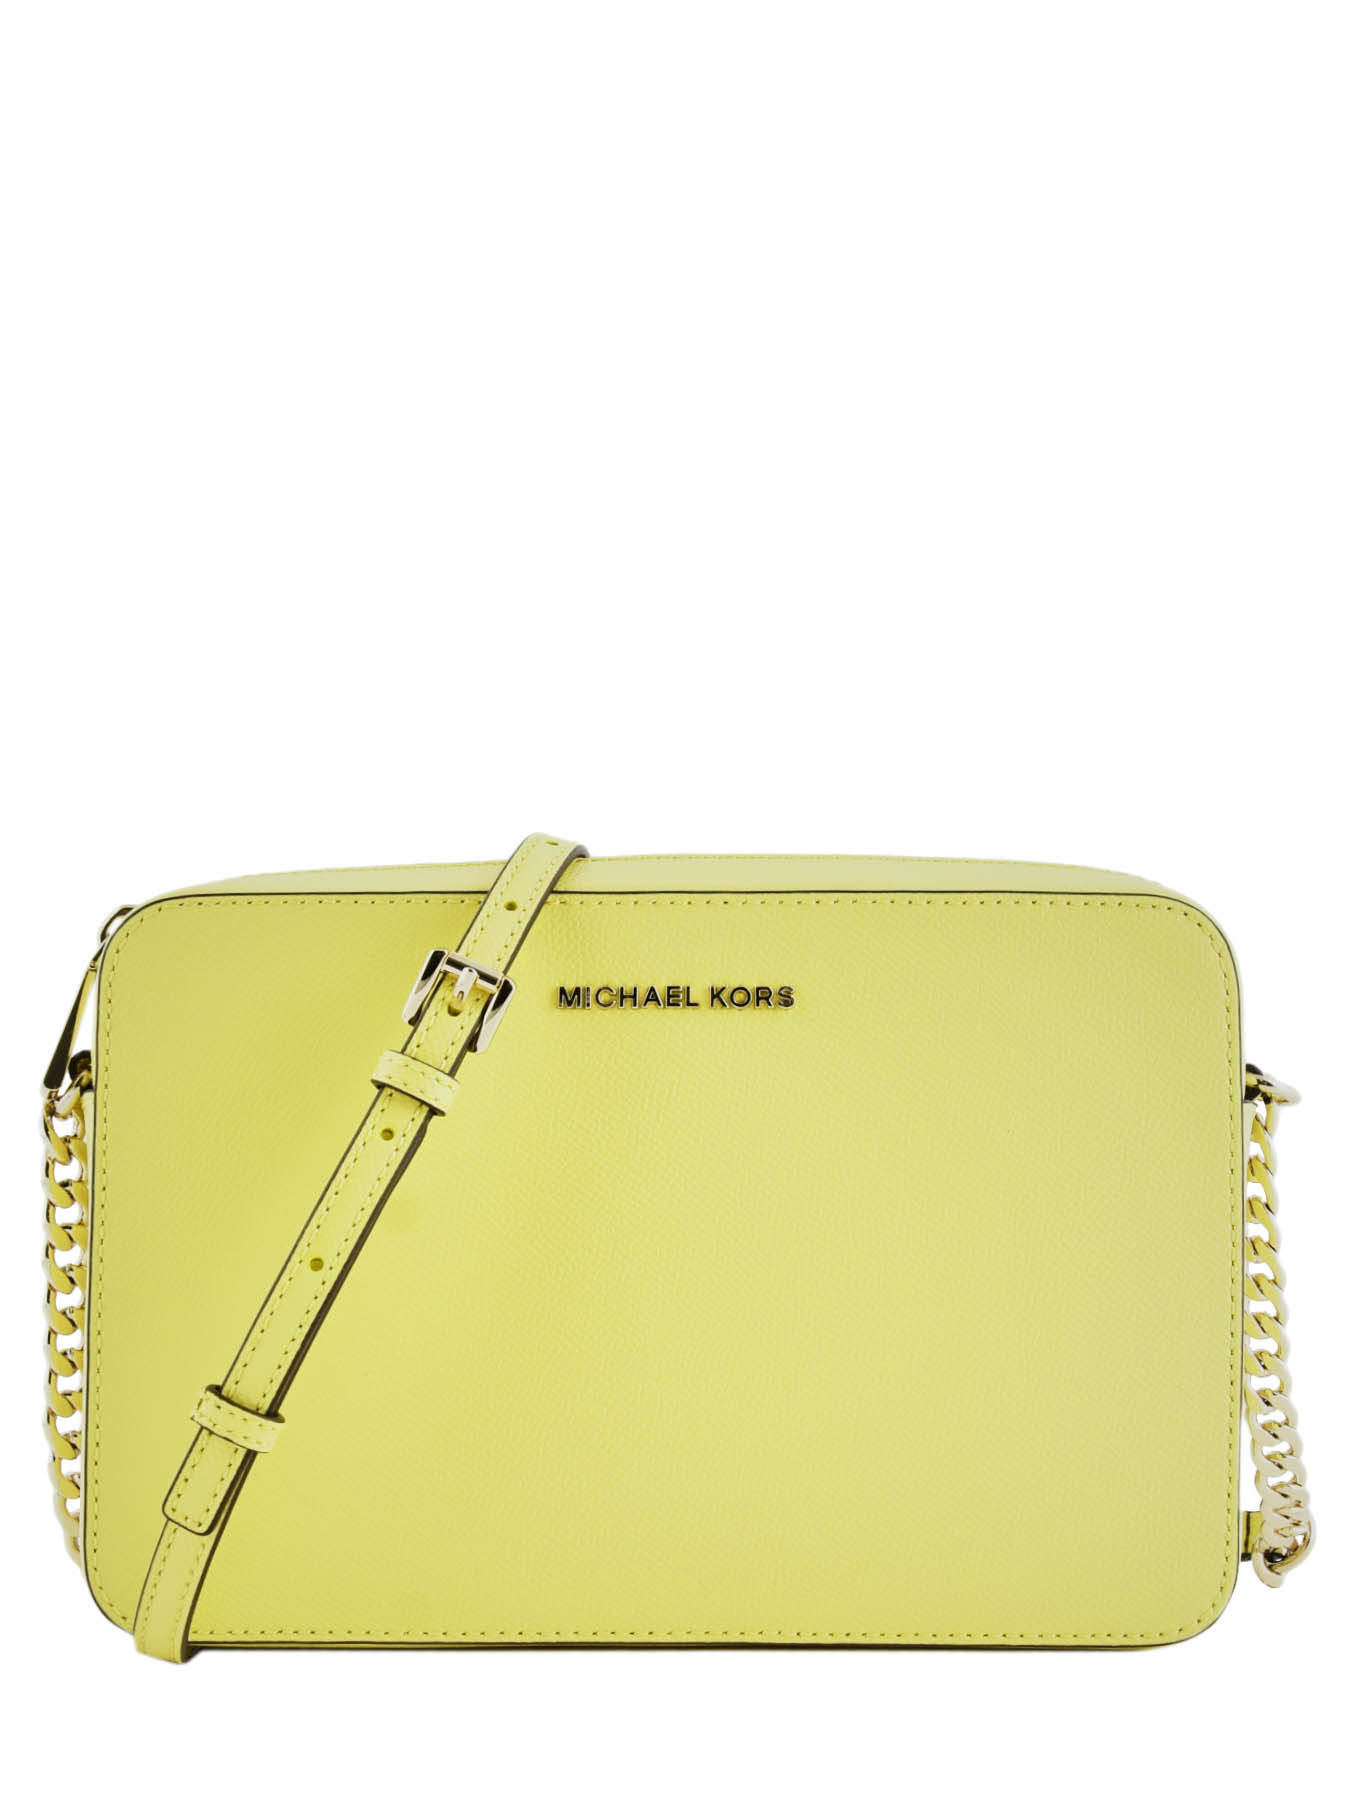 2631d87e07c ... Sac Bandoulière Jet Set Travel Cuir Michael kors Jaune jet set travel  T8TF5C4L ...